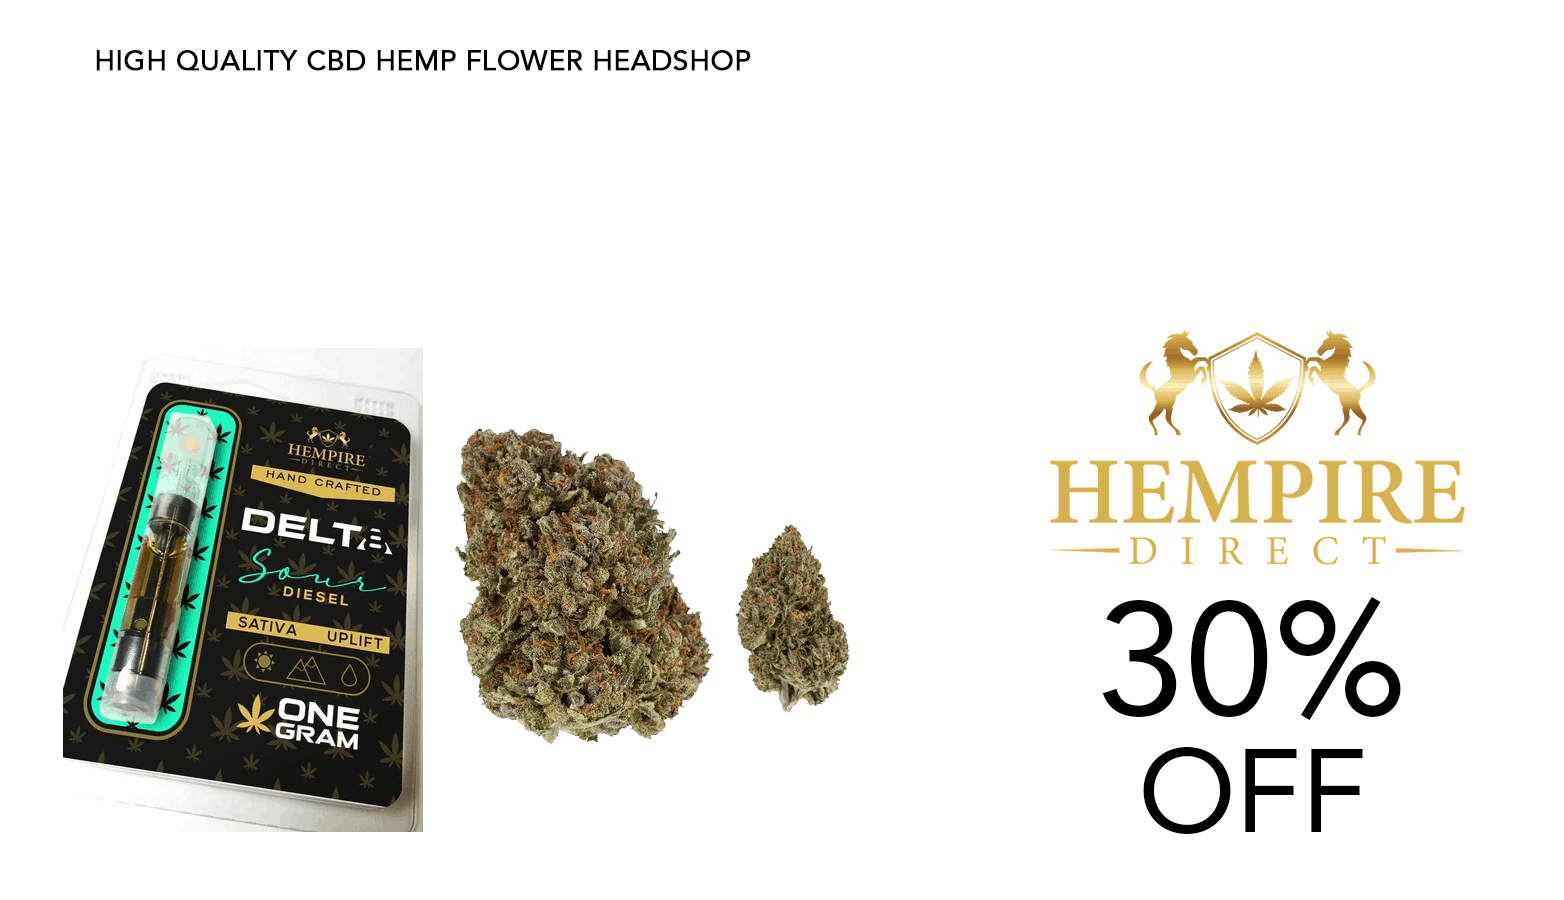 Hempire Direct CBD Coupon Code 30 Percent Off Discount